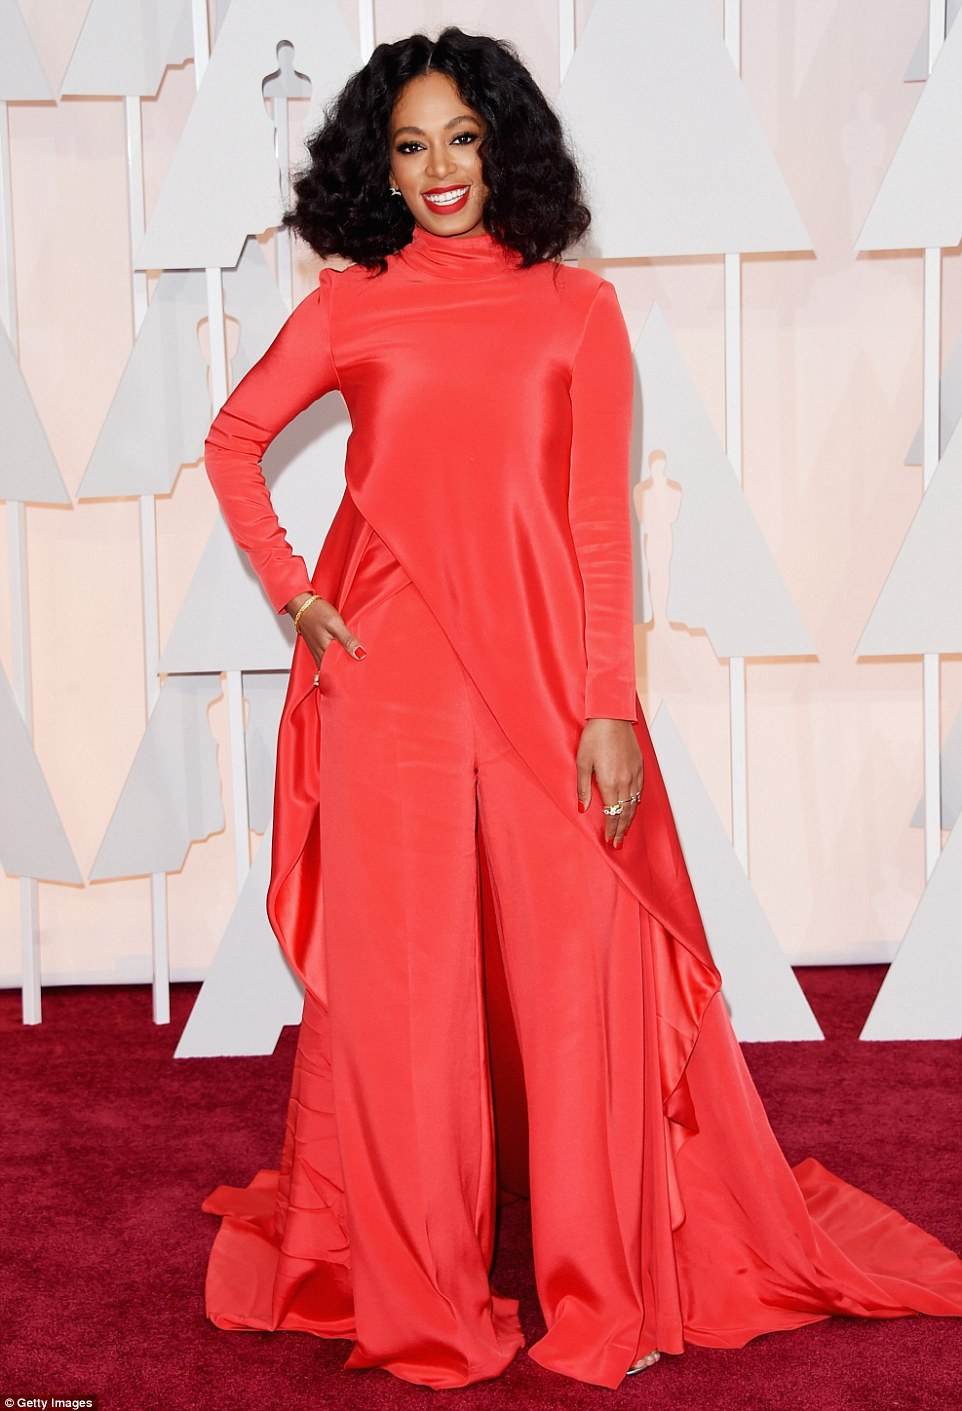 The usually stylish Solange Knowles turned up to the Oscars wearing the red carpet; the Christian Siriano Fall 2015 crepe cape top and pant was a strange choice